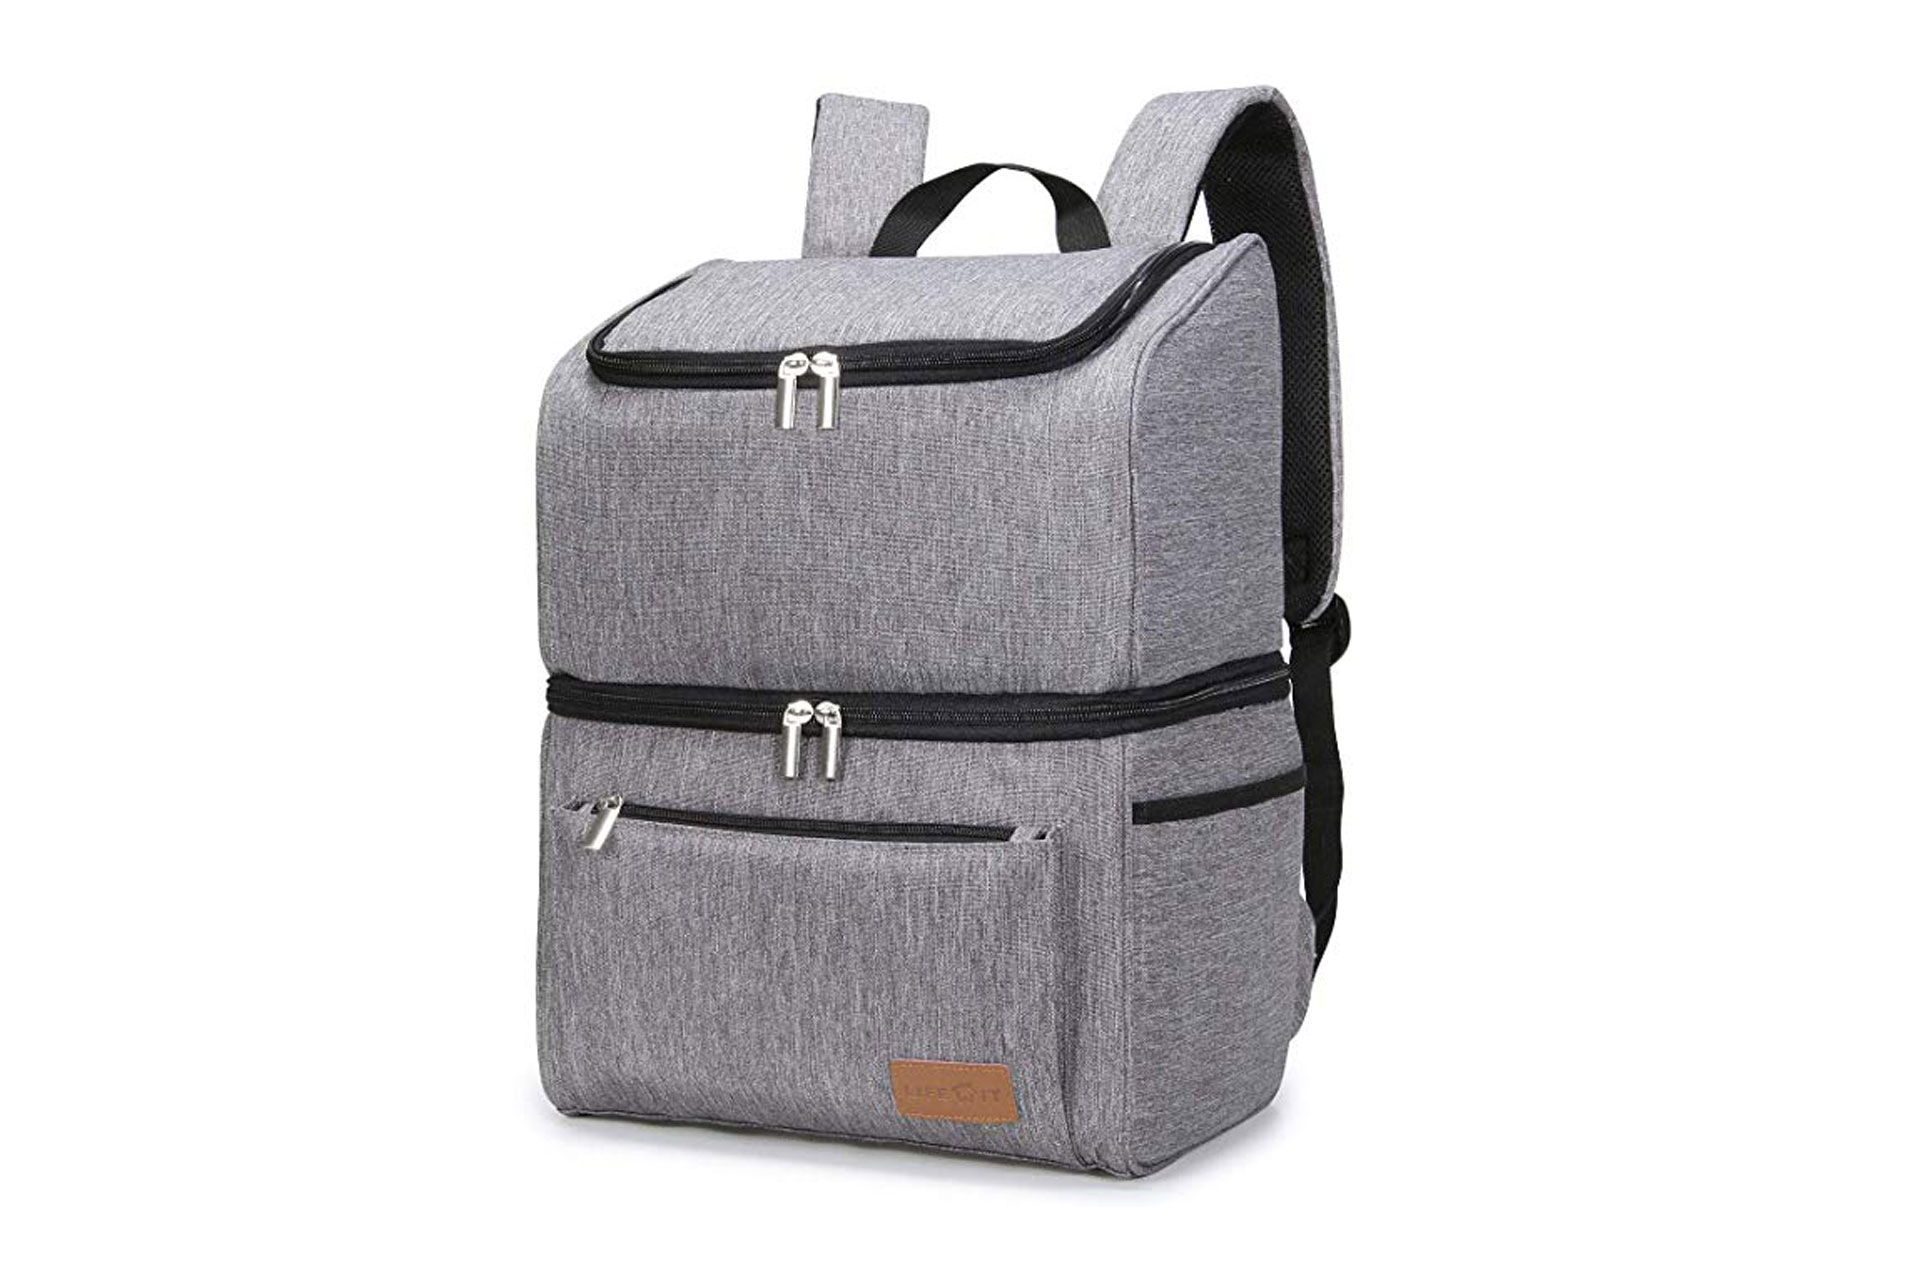 Beach Cooler Backpack; Courtesy of Amazon